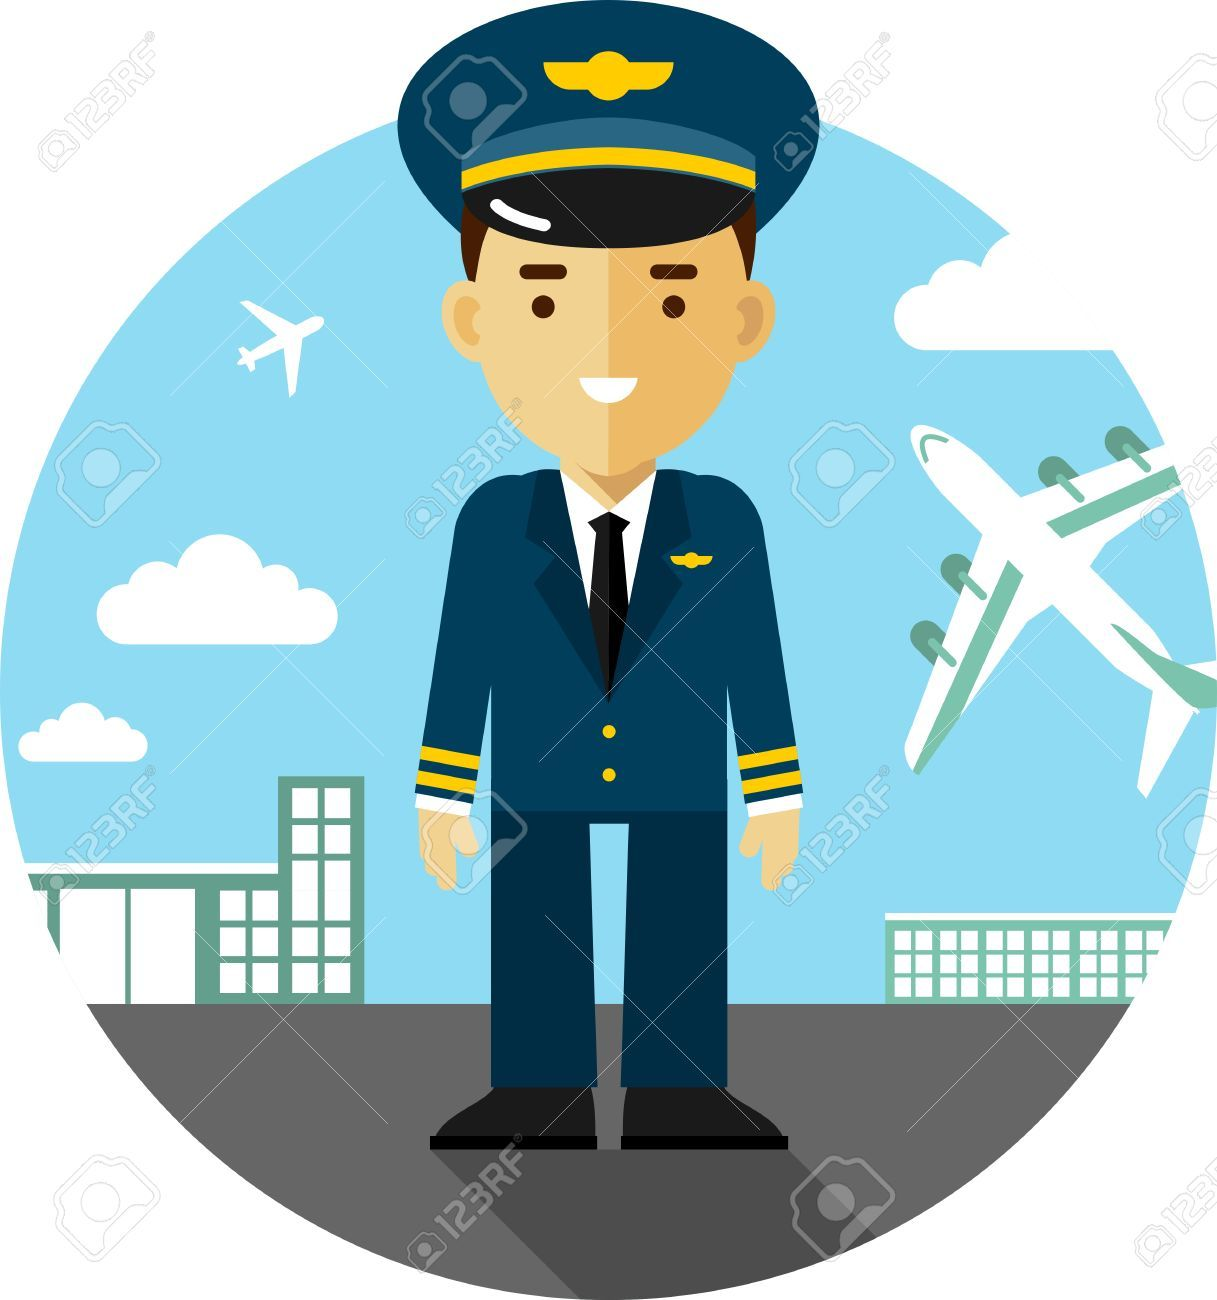 Image result for pilot clipart.